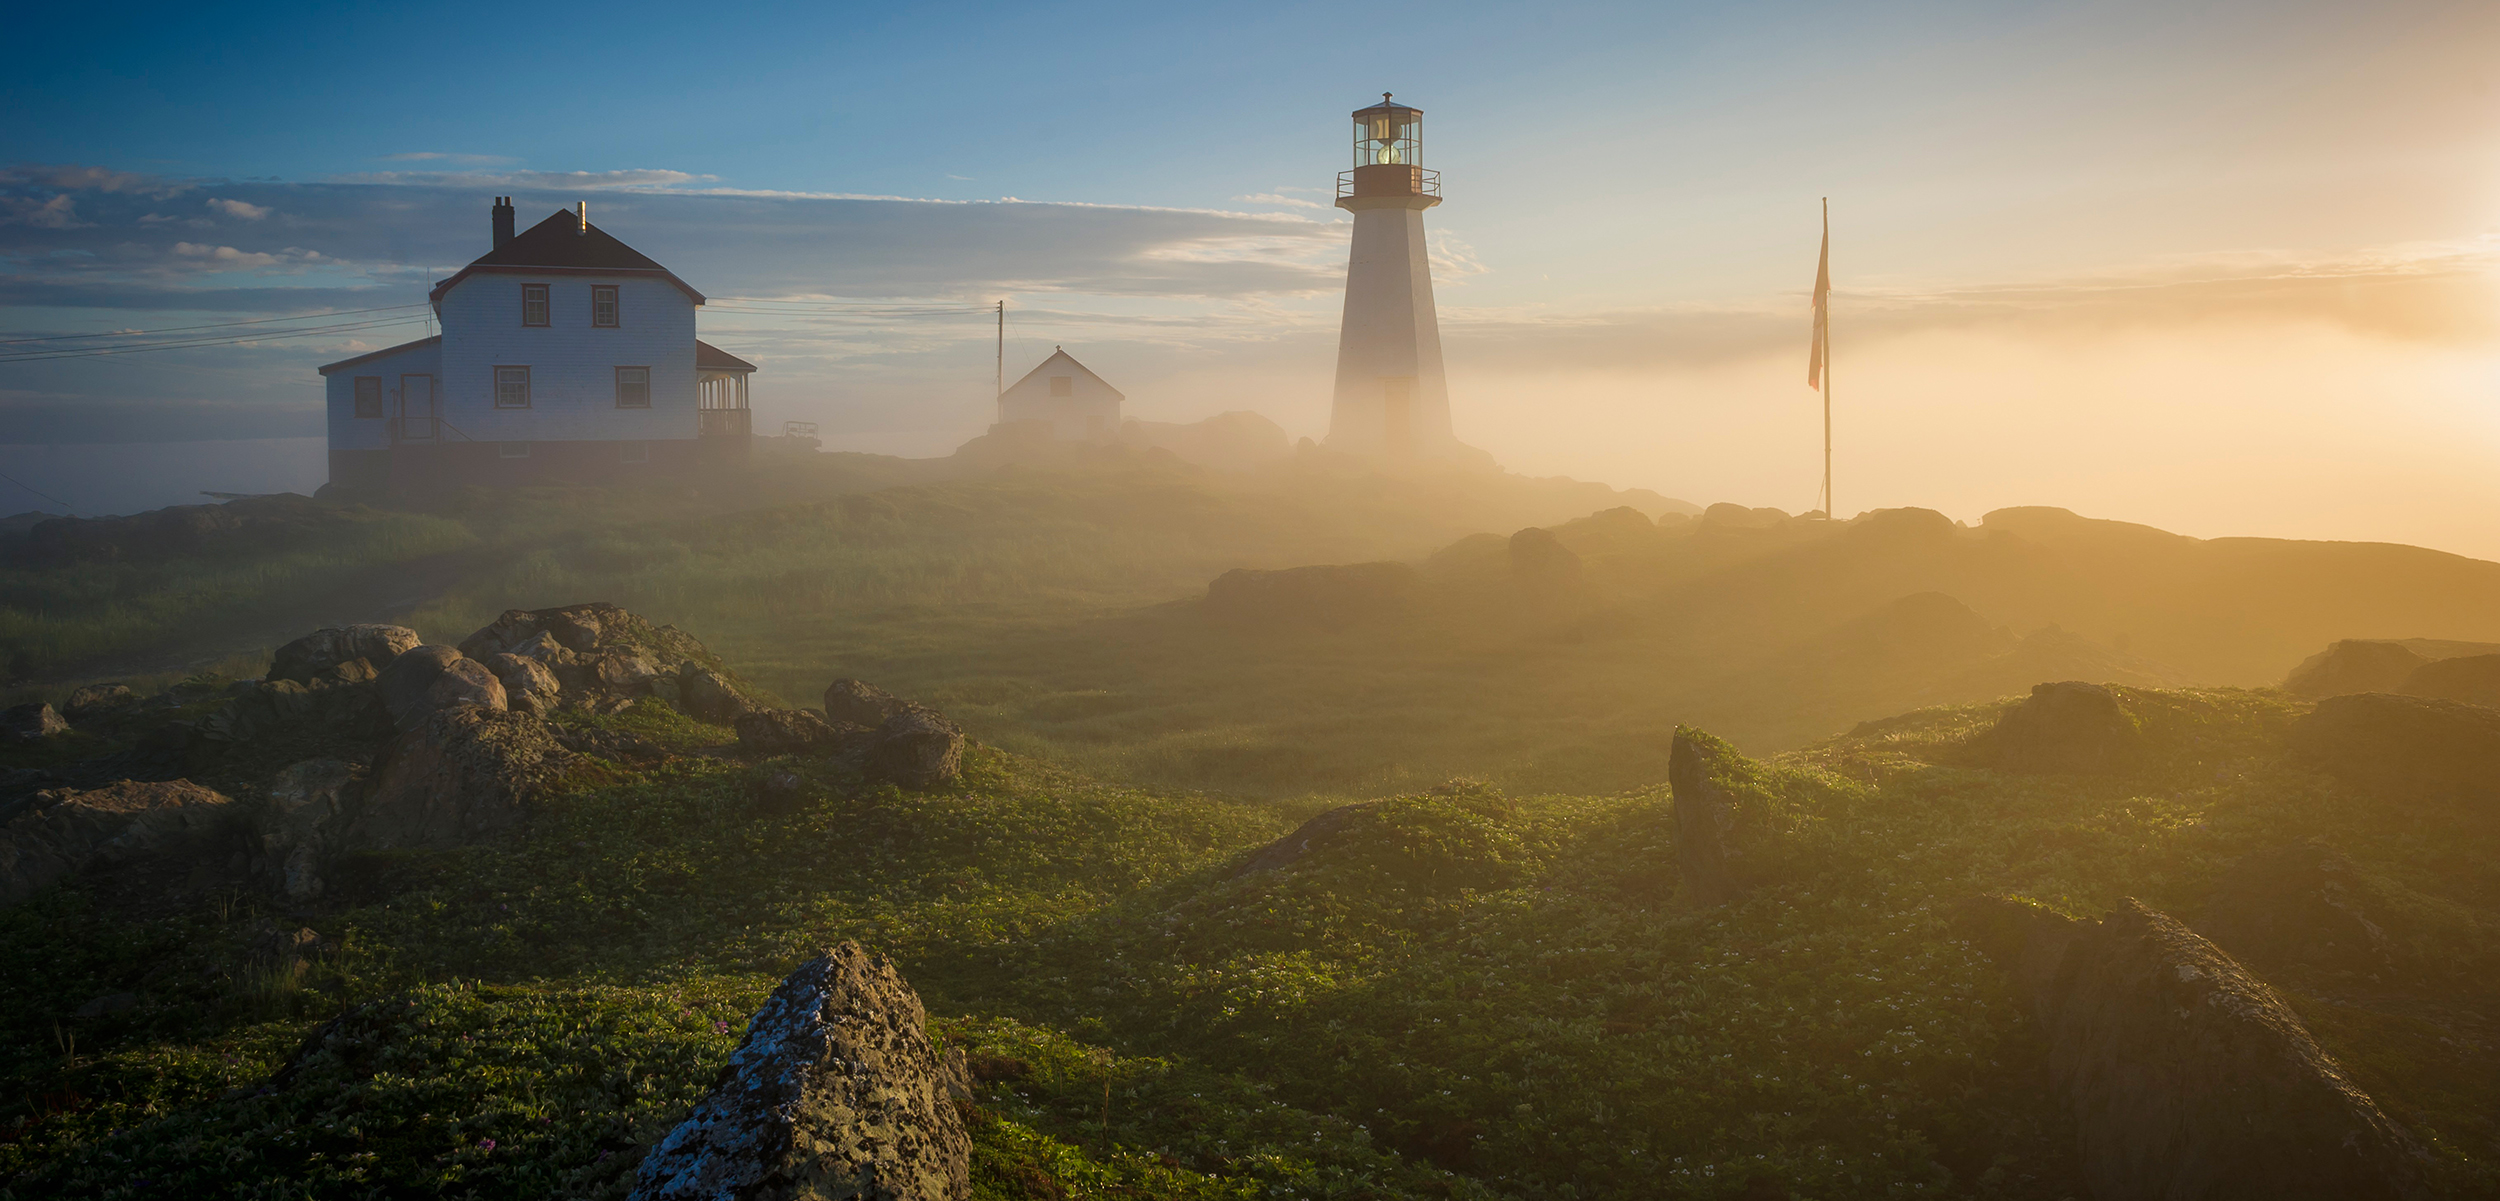 faro de luz Light house Newfoundland, Canada running getaway by Aire Libre